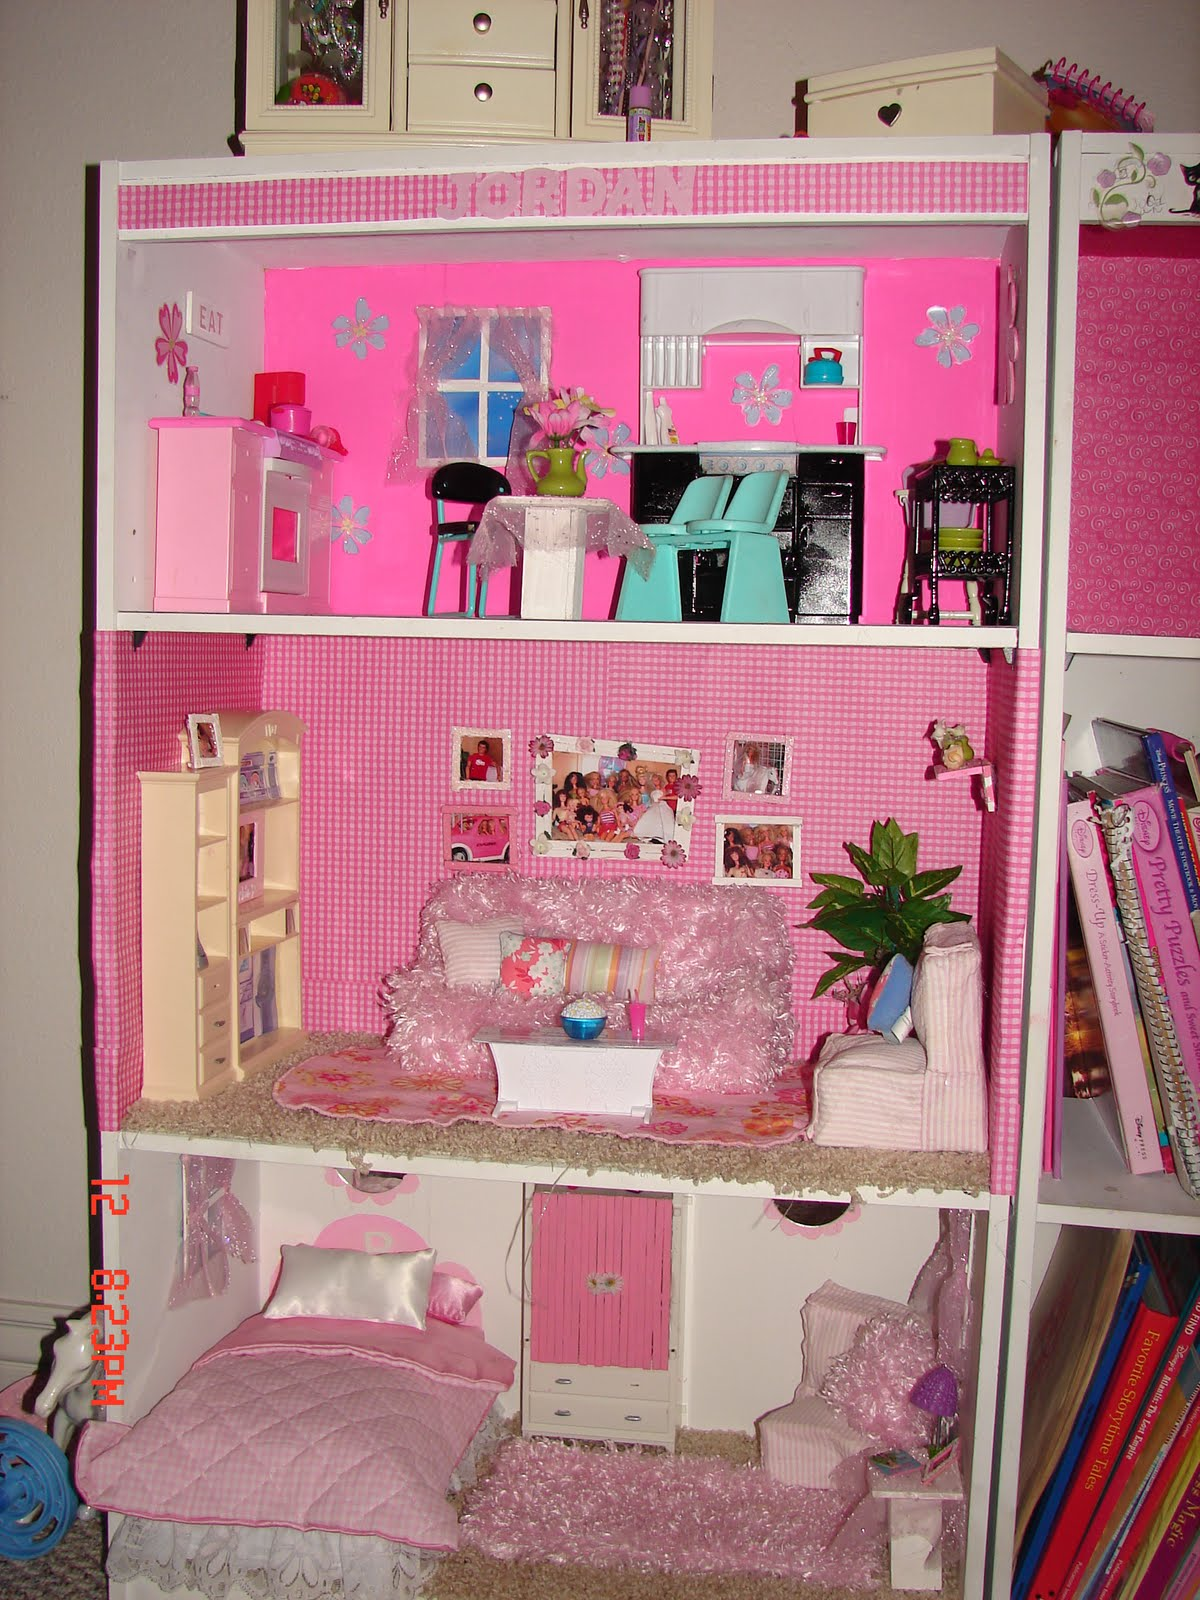 Make Your Own Barbie Furniture Property Simple Diy Barbie House From A Shelf  A Girl And A Glue Gun 2017